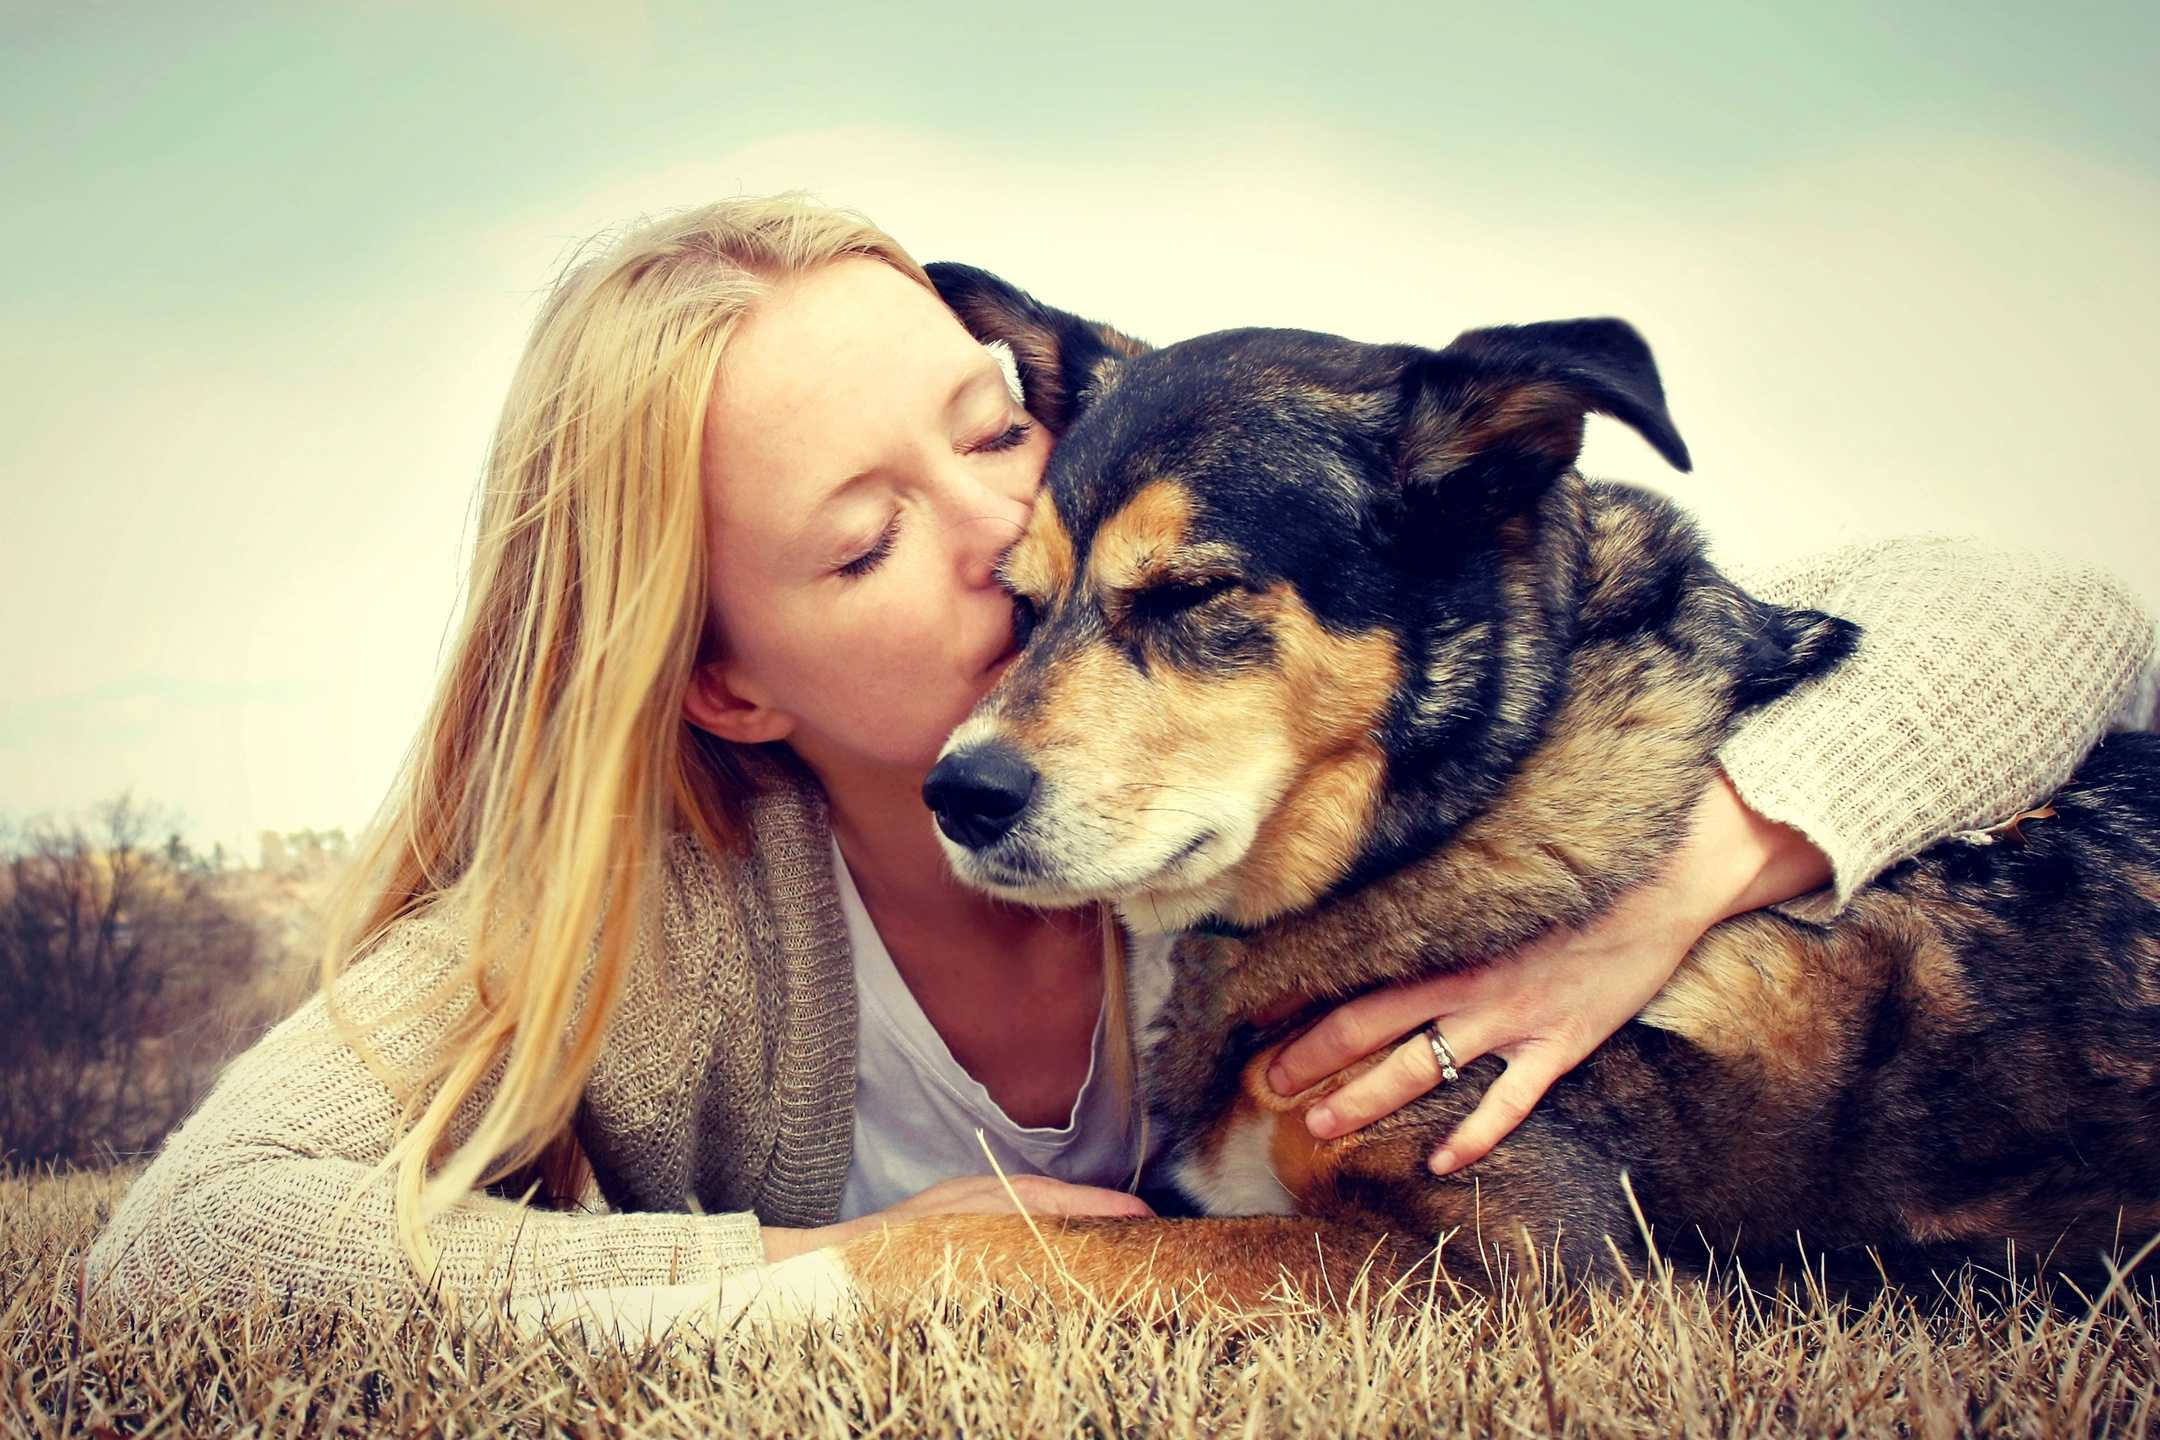 person, dog, kiss, love, shepherd mix